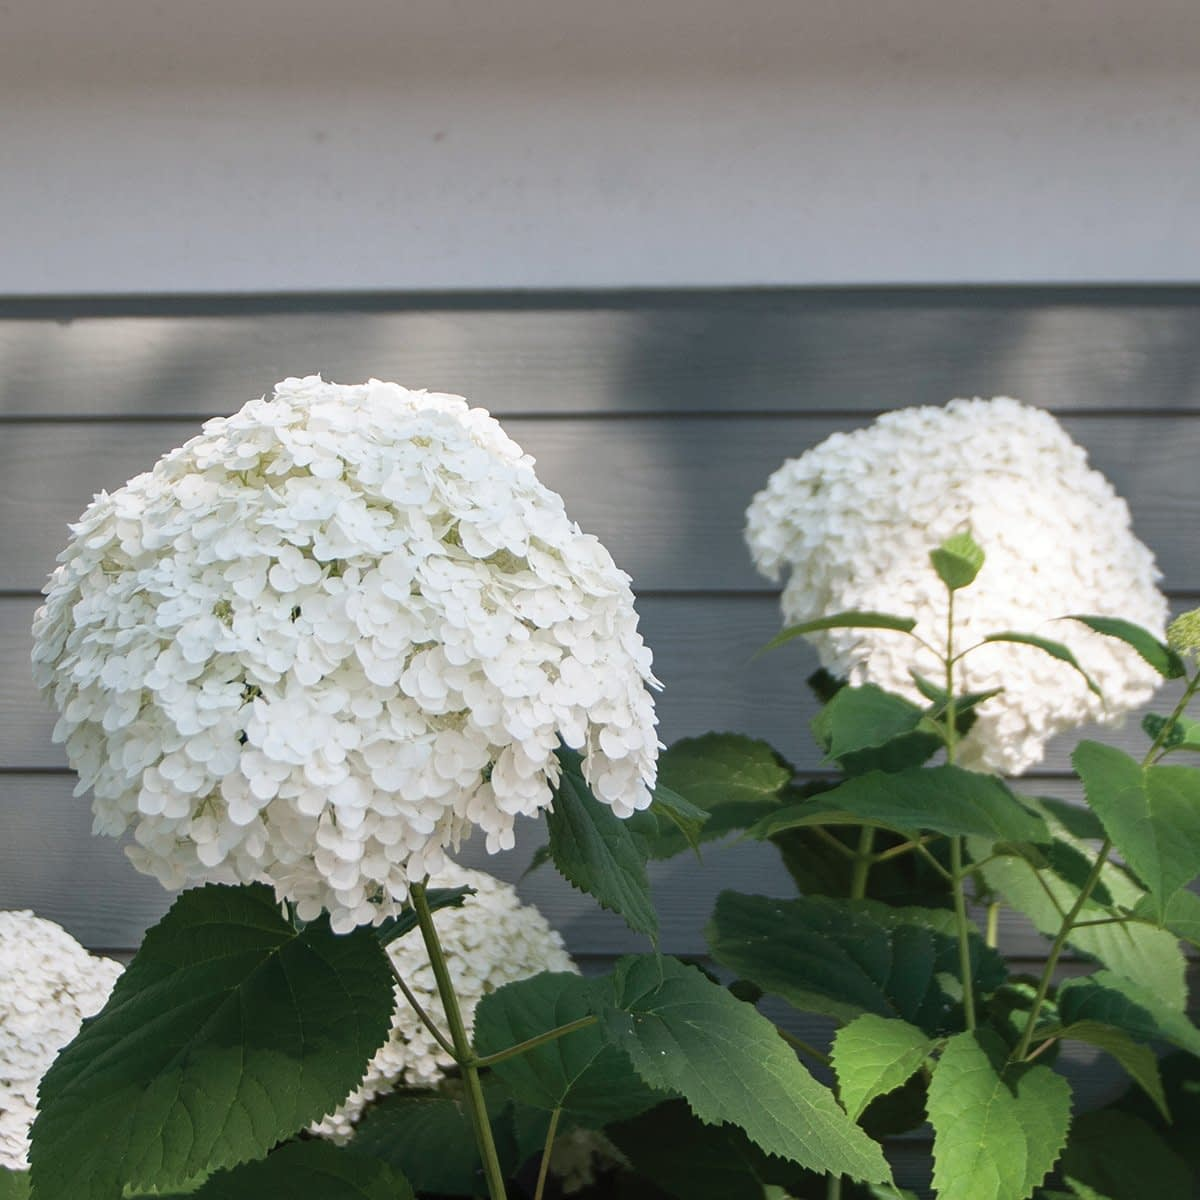 Two large white hydrangea blooms against gray house